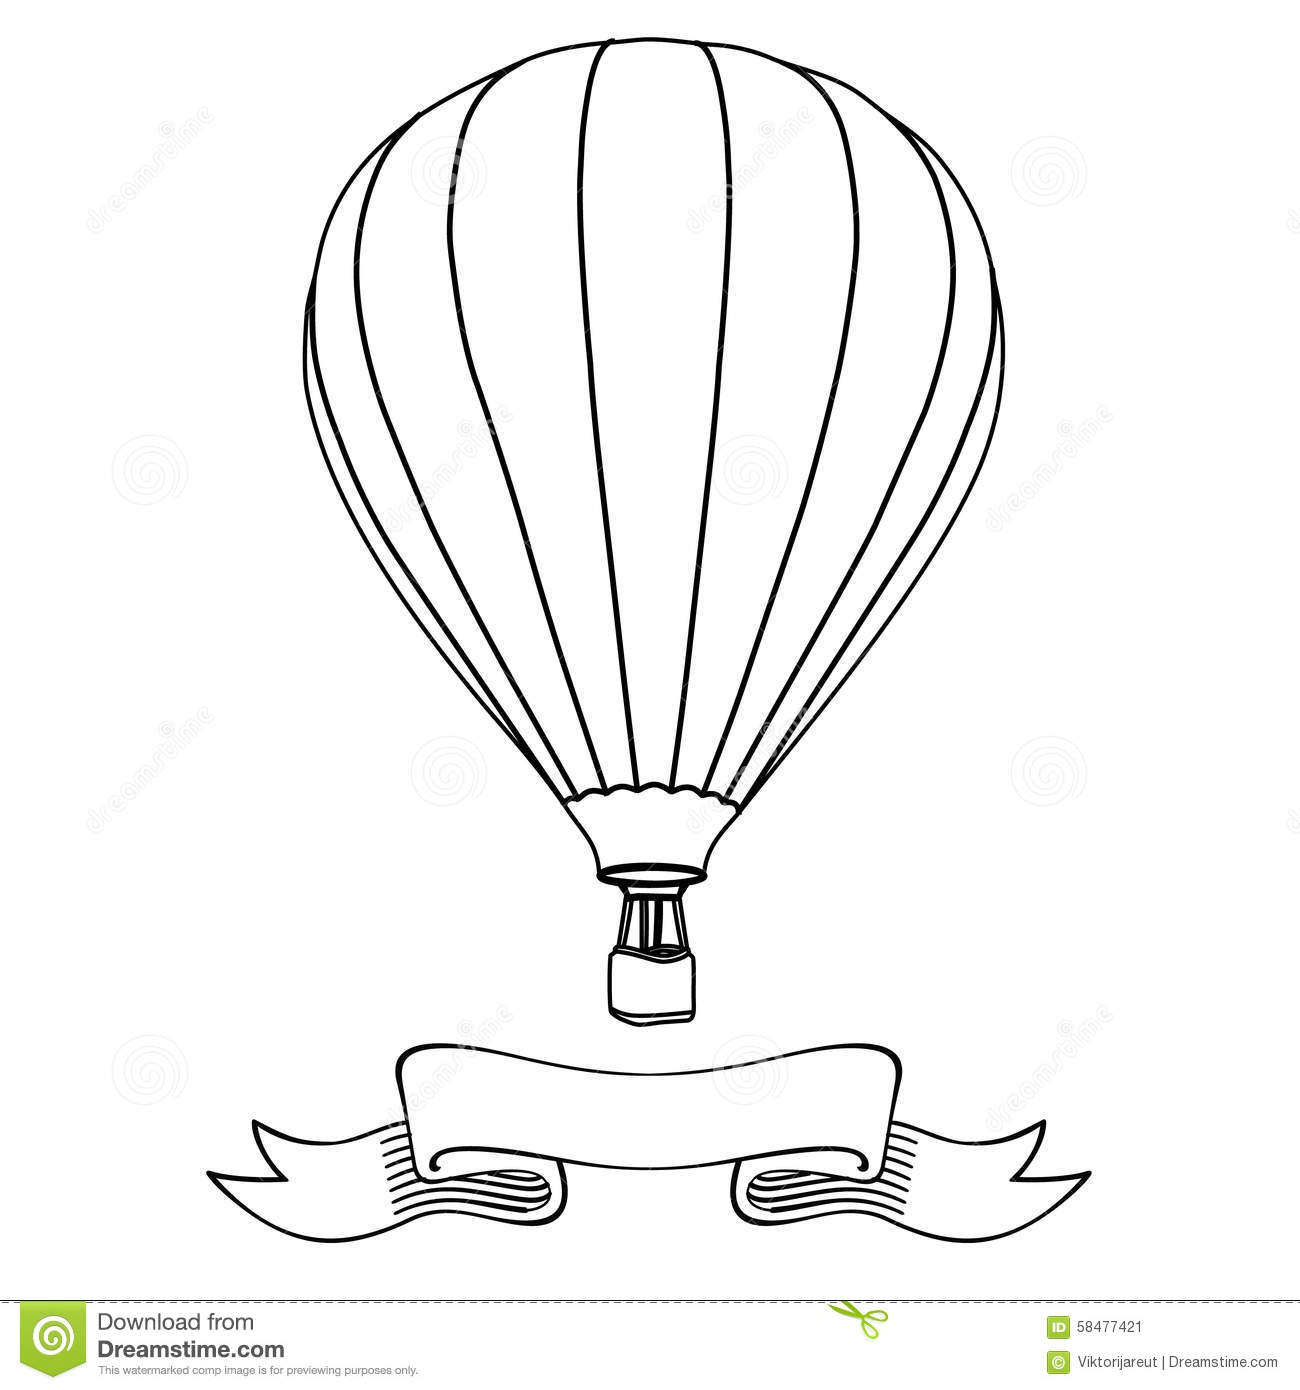 Custom Card Template french id card template : Hot air balloon in the sky with message on banner illustration. Hot ...